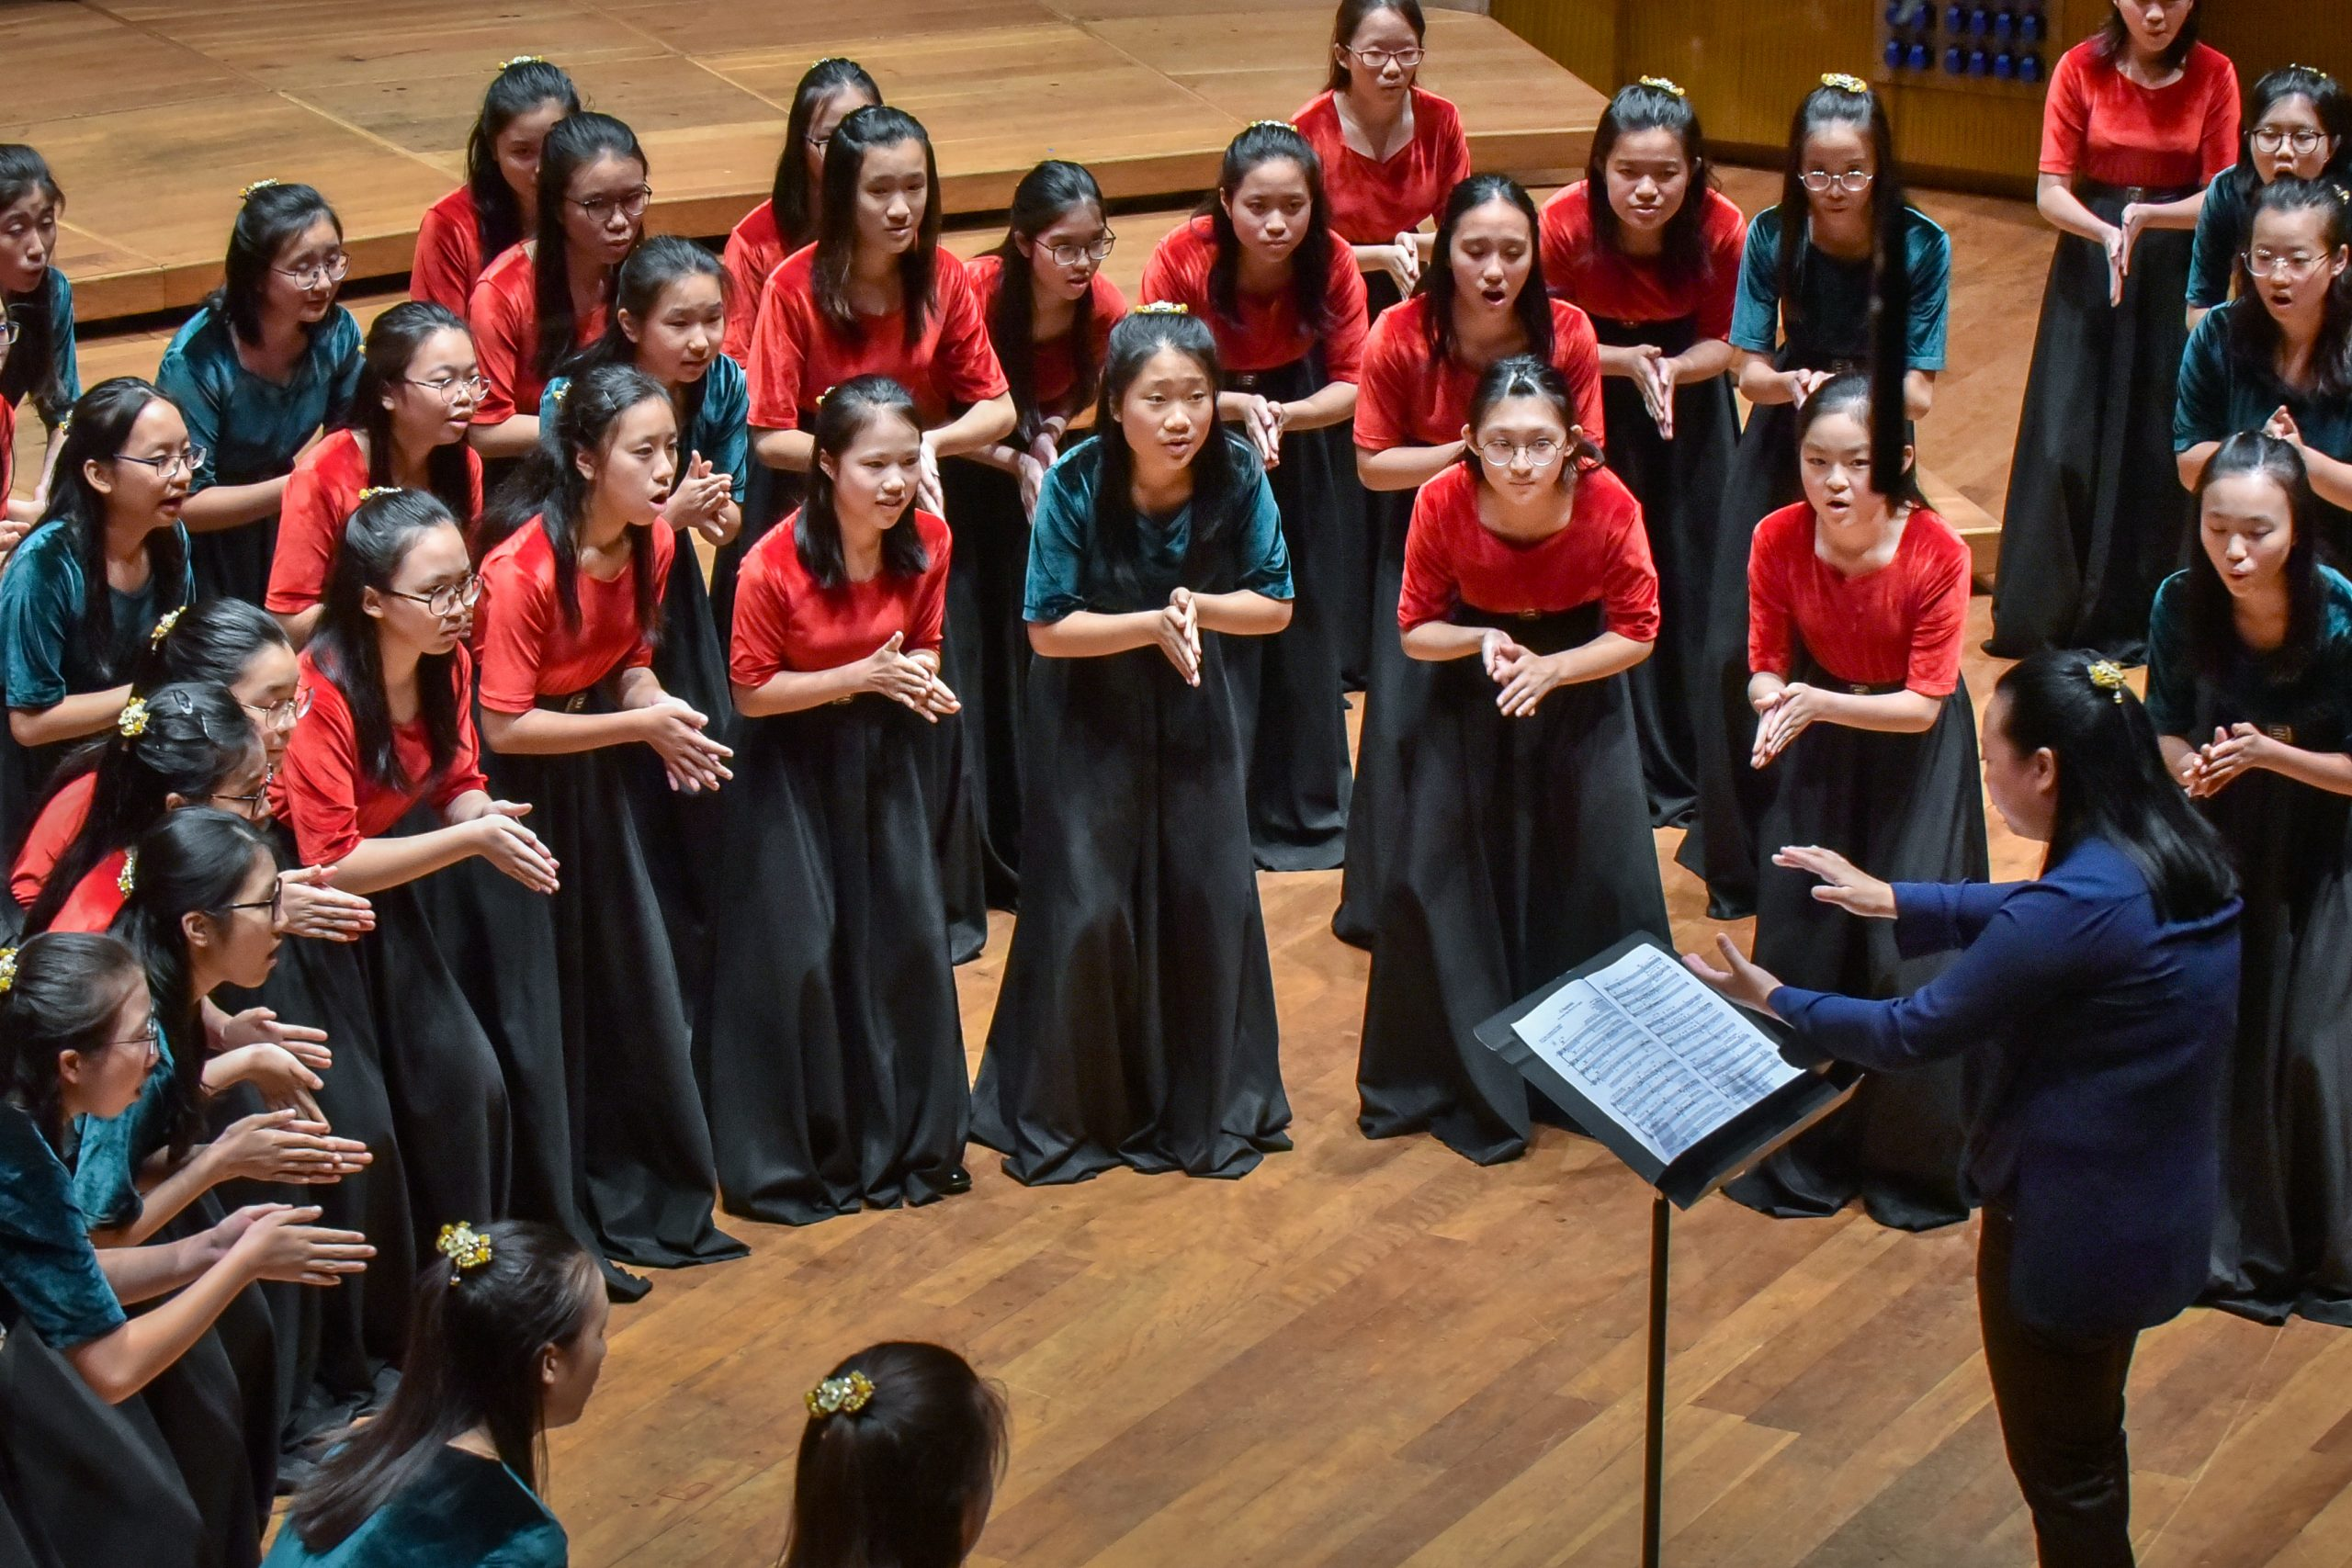 Rescheduled dates for our 13th International Choral Festival